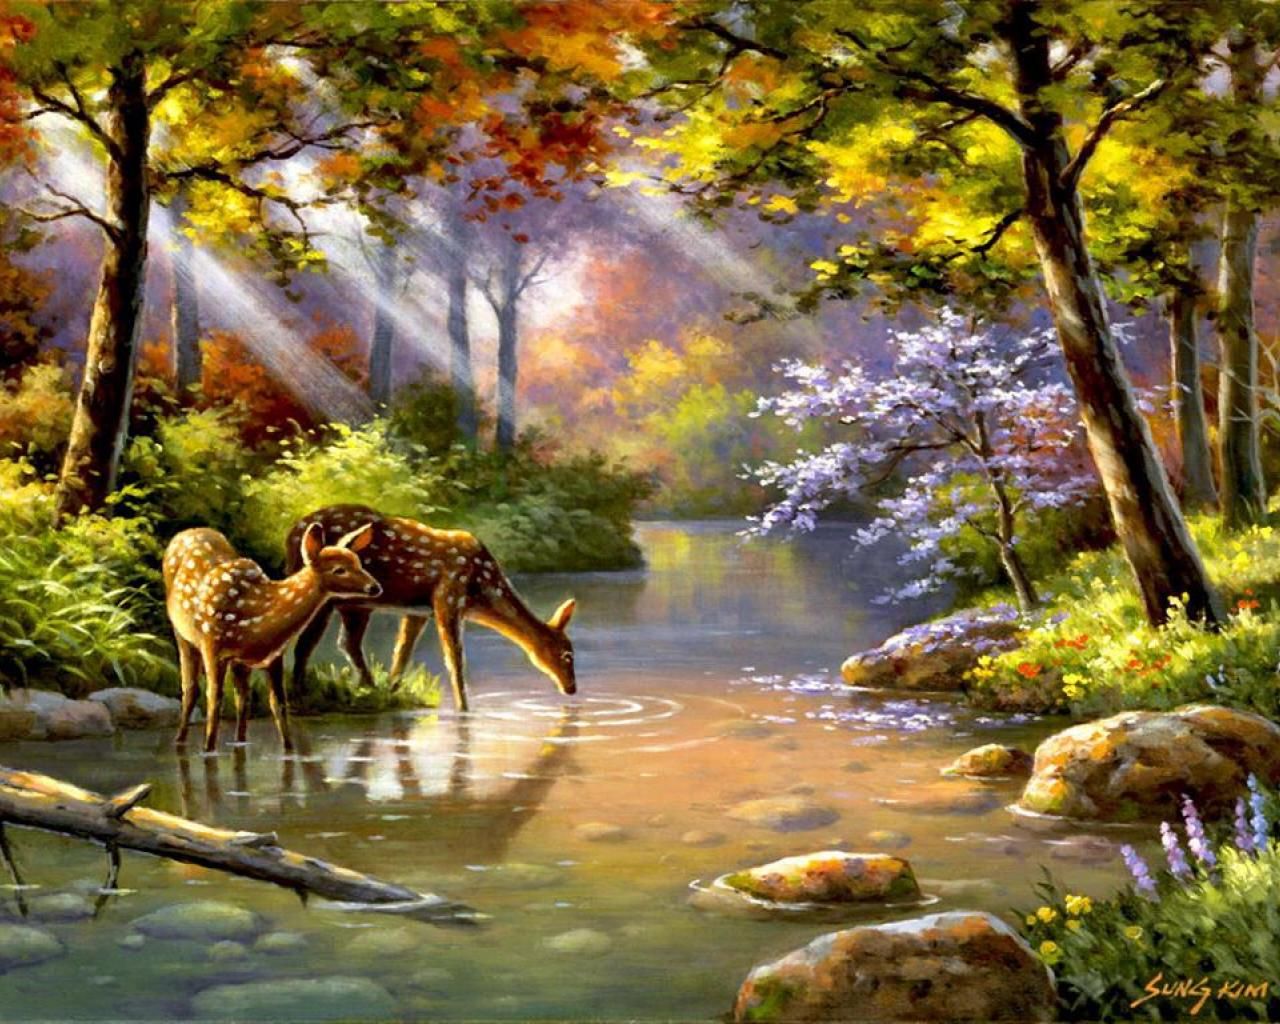 Wallpaper Tags: stones nice deer flowers water roe pretty river quiet creek sunbeam stream nature serenity sun calmness light lovely rays beautiful trees ...